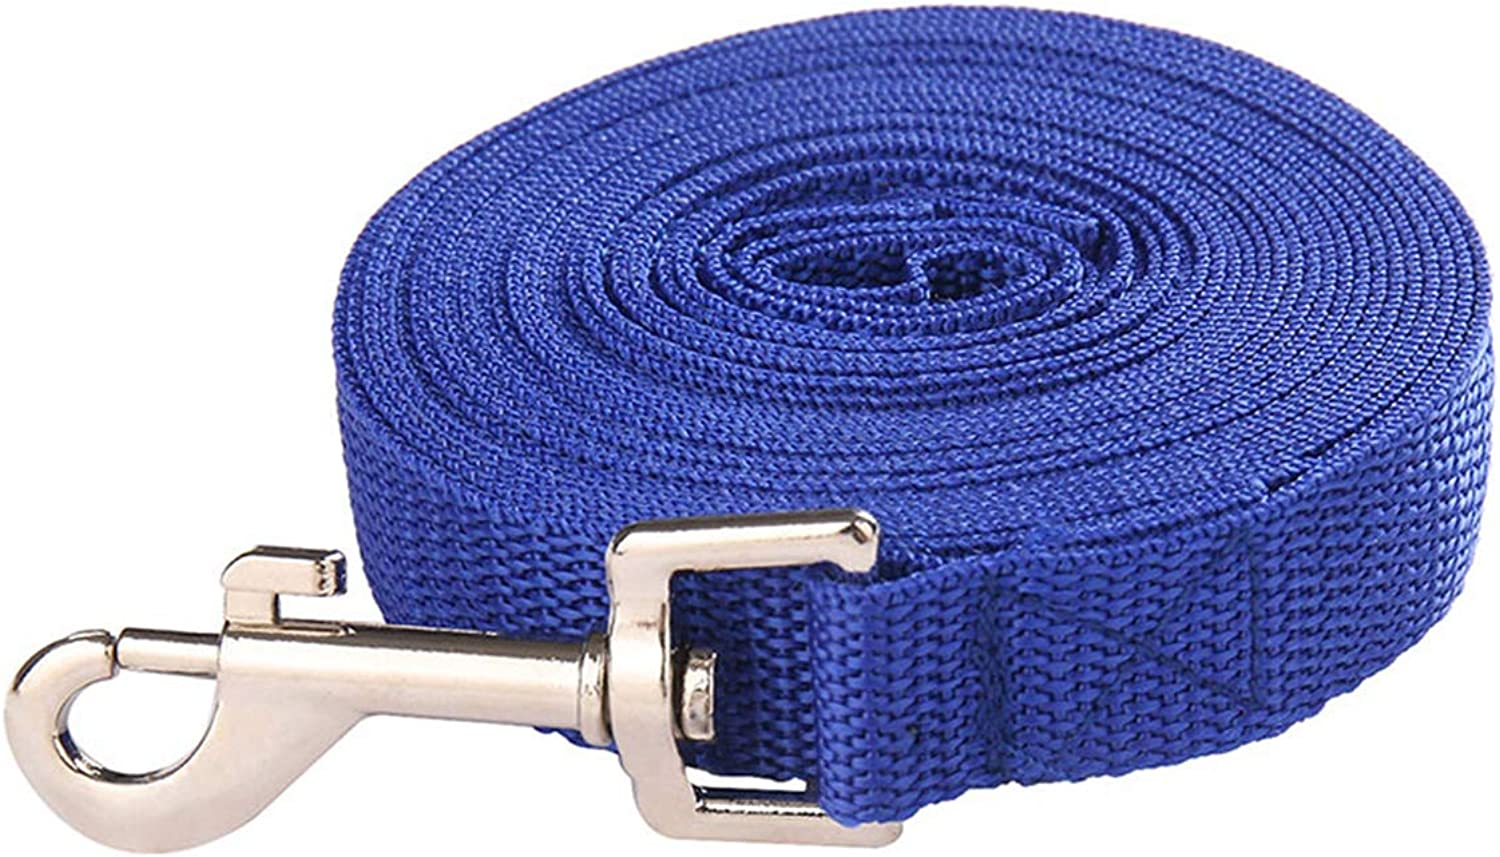 PETFDH Dog Leash for Medium Large Dogs Pet Puppy Cat Walking Training Lead Rope Big Dog Nylon Rope Long Leashes 6M 10M 15M 20M 30M 50M bluee 50 m x 2.0 cm